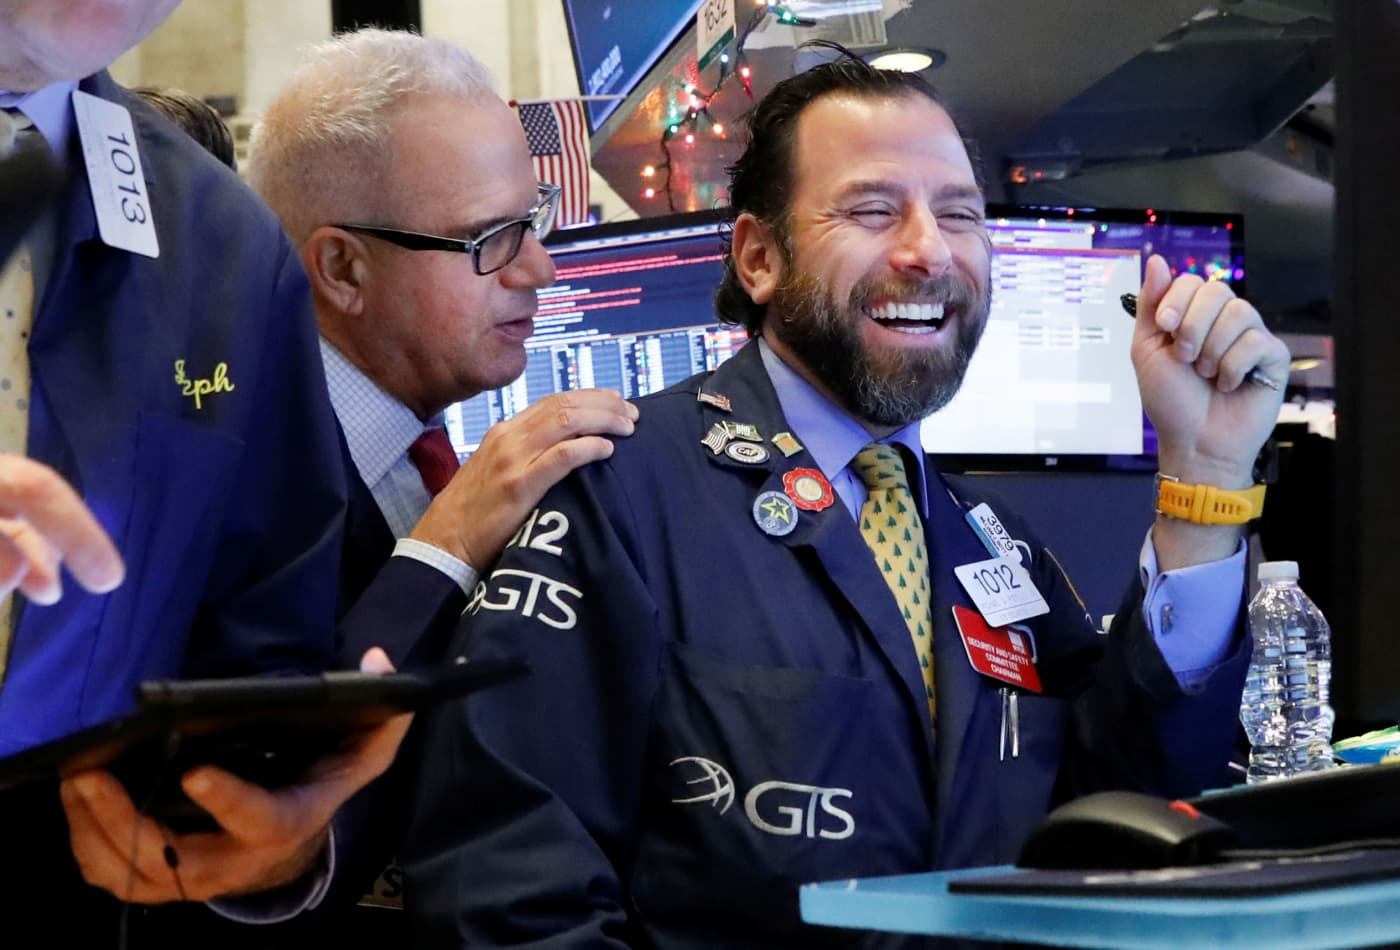 This is the greatest 50-day rally in the history of the S&P 500